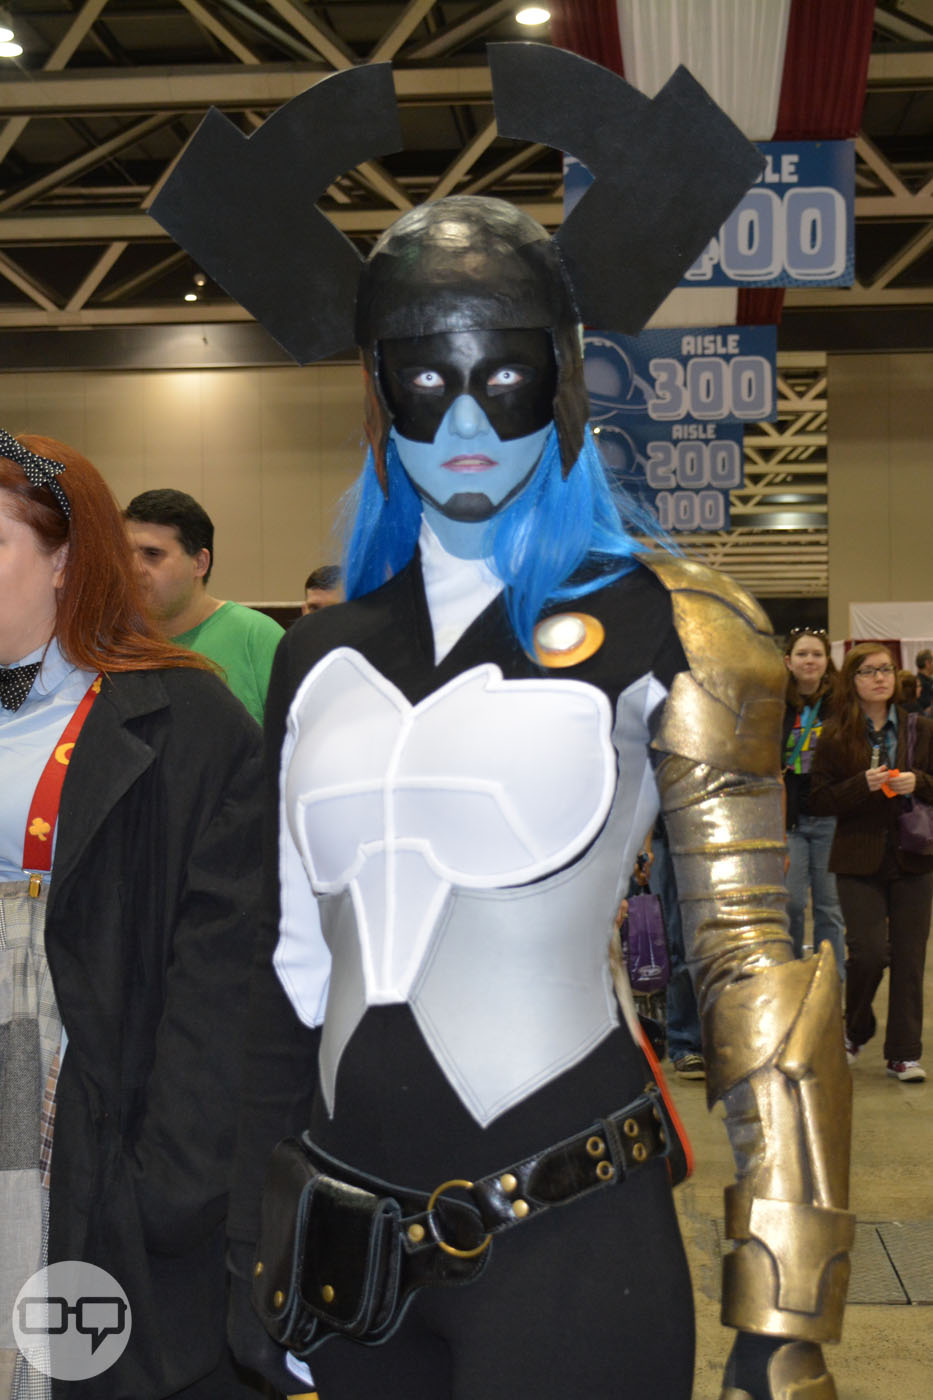 Planet-Comicon-2015-ProNerd-Cosplay-D5-9